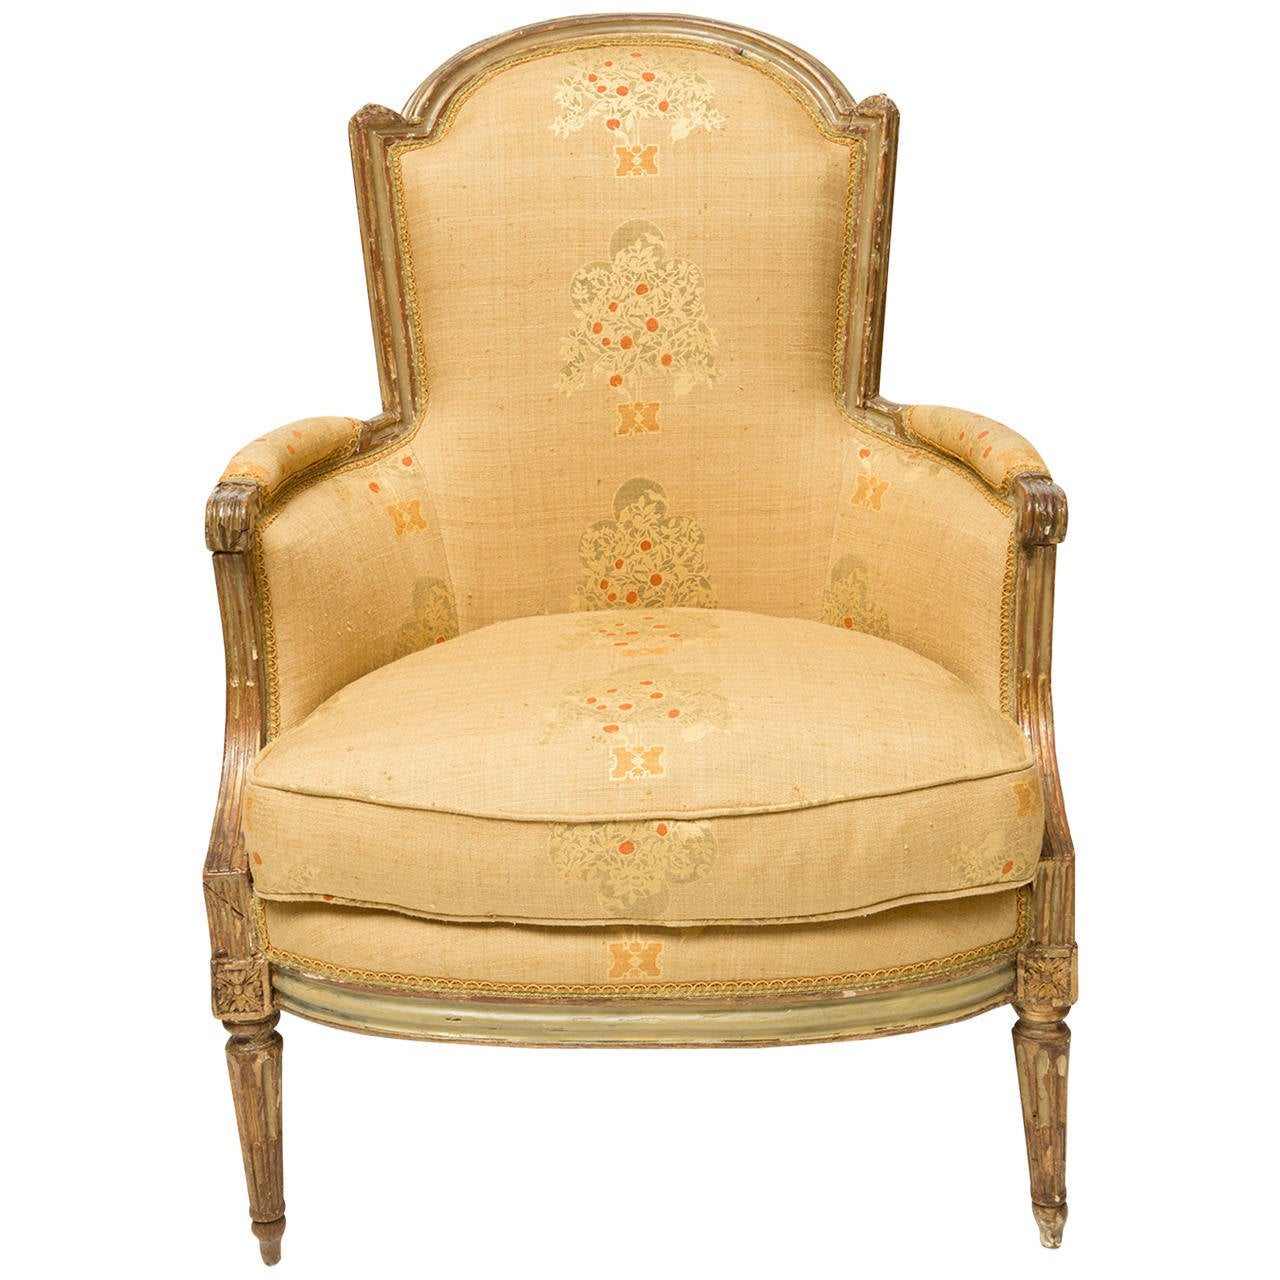 bergere chairs for sale ikea pink chair 19th century french at 1stdibs